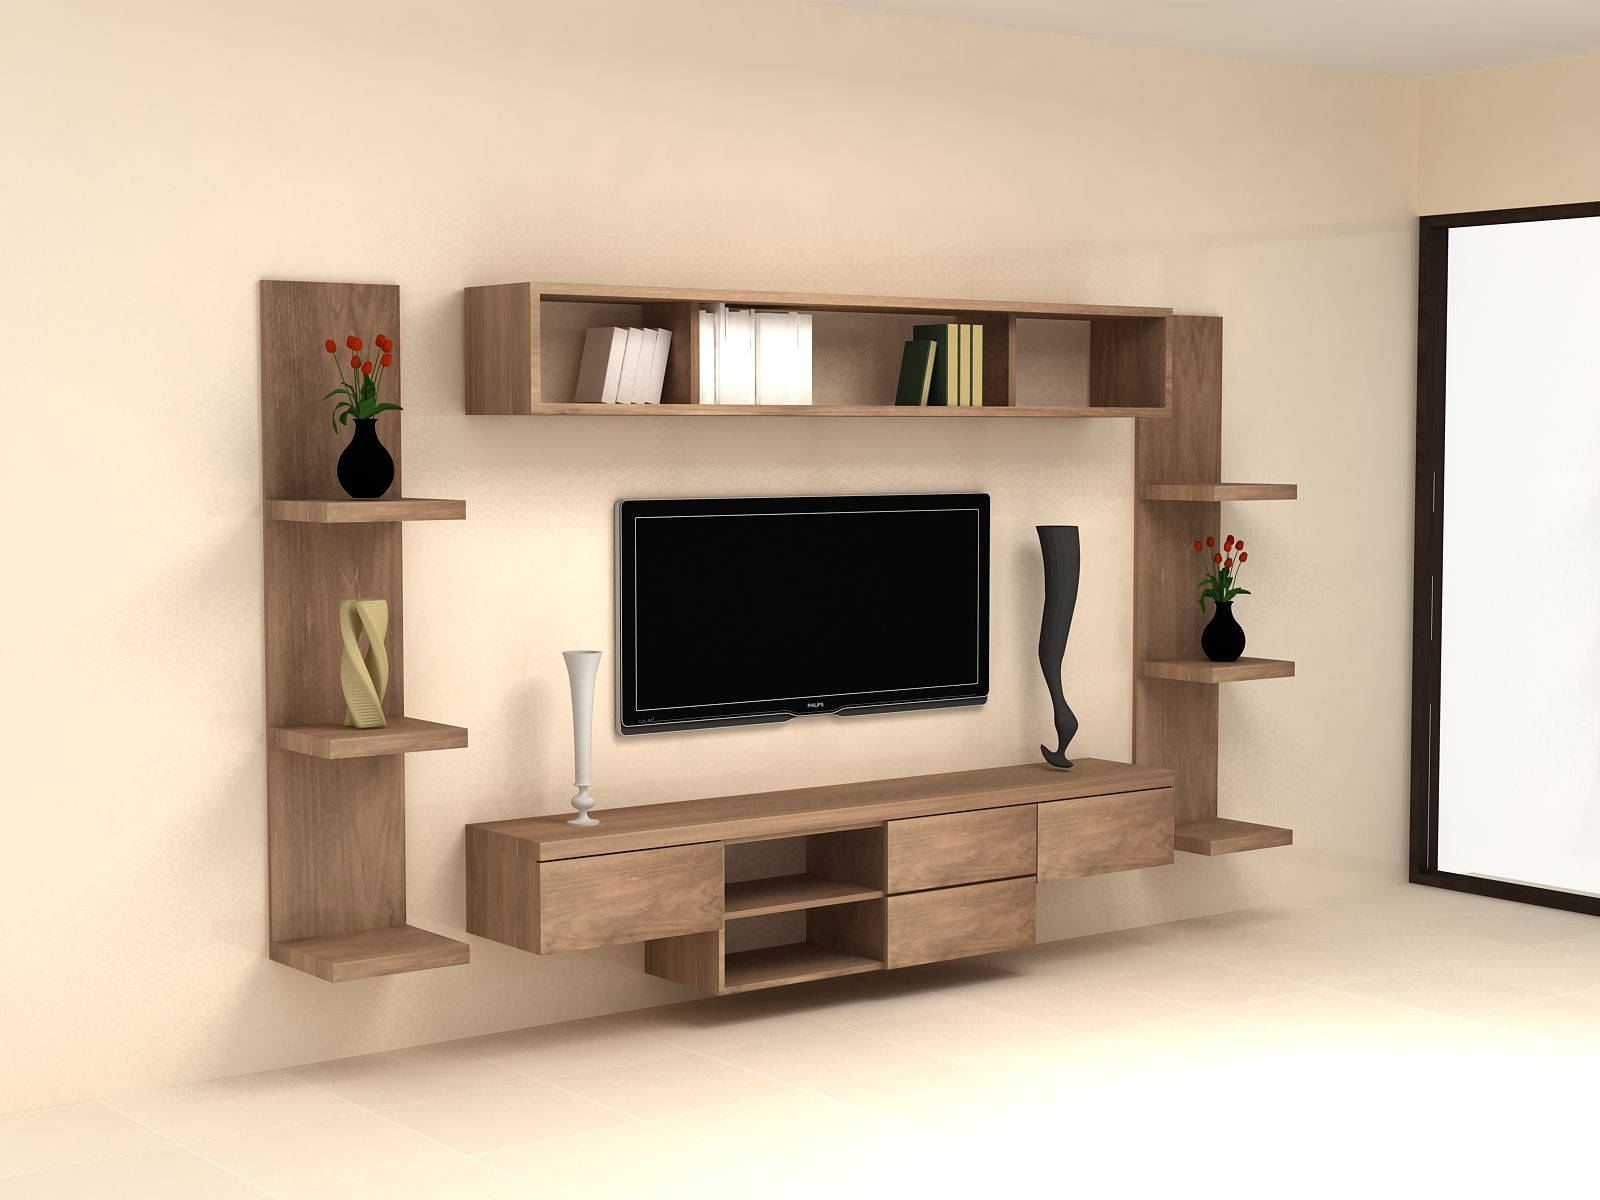 Wall hung tv cabinet 2 home decor pinterest for Wall hung media cabinet